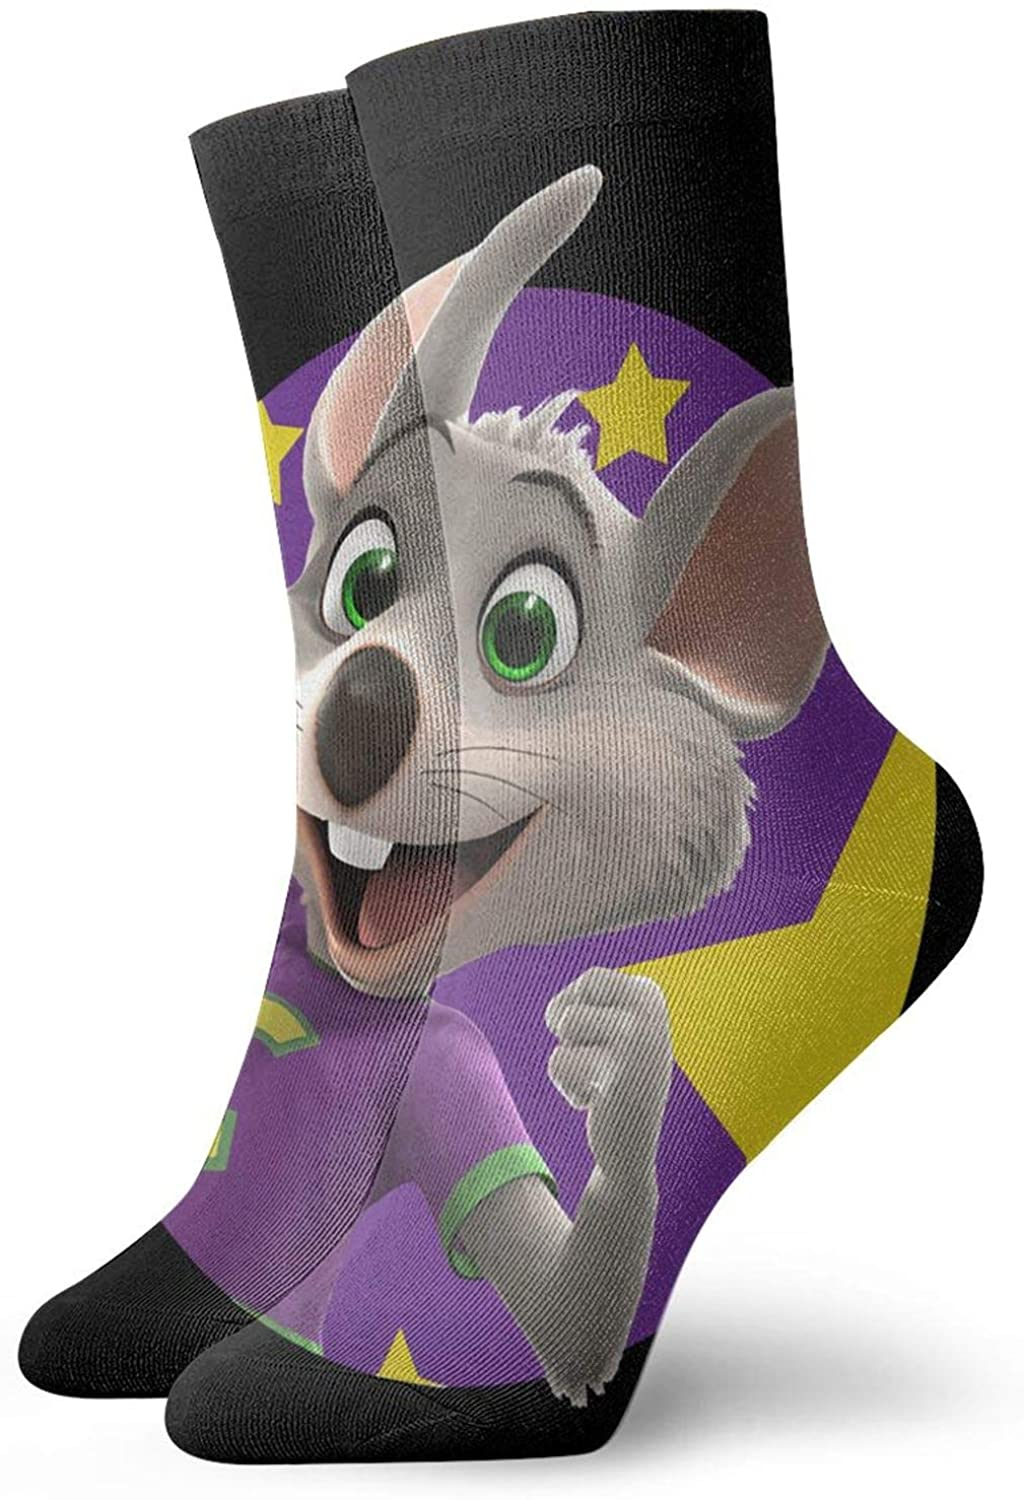 Chuck E CheeseS Unisex Men & Womans Comfortable Casual Socks Short, Boat Socks One Size